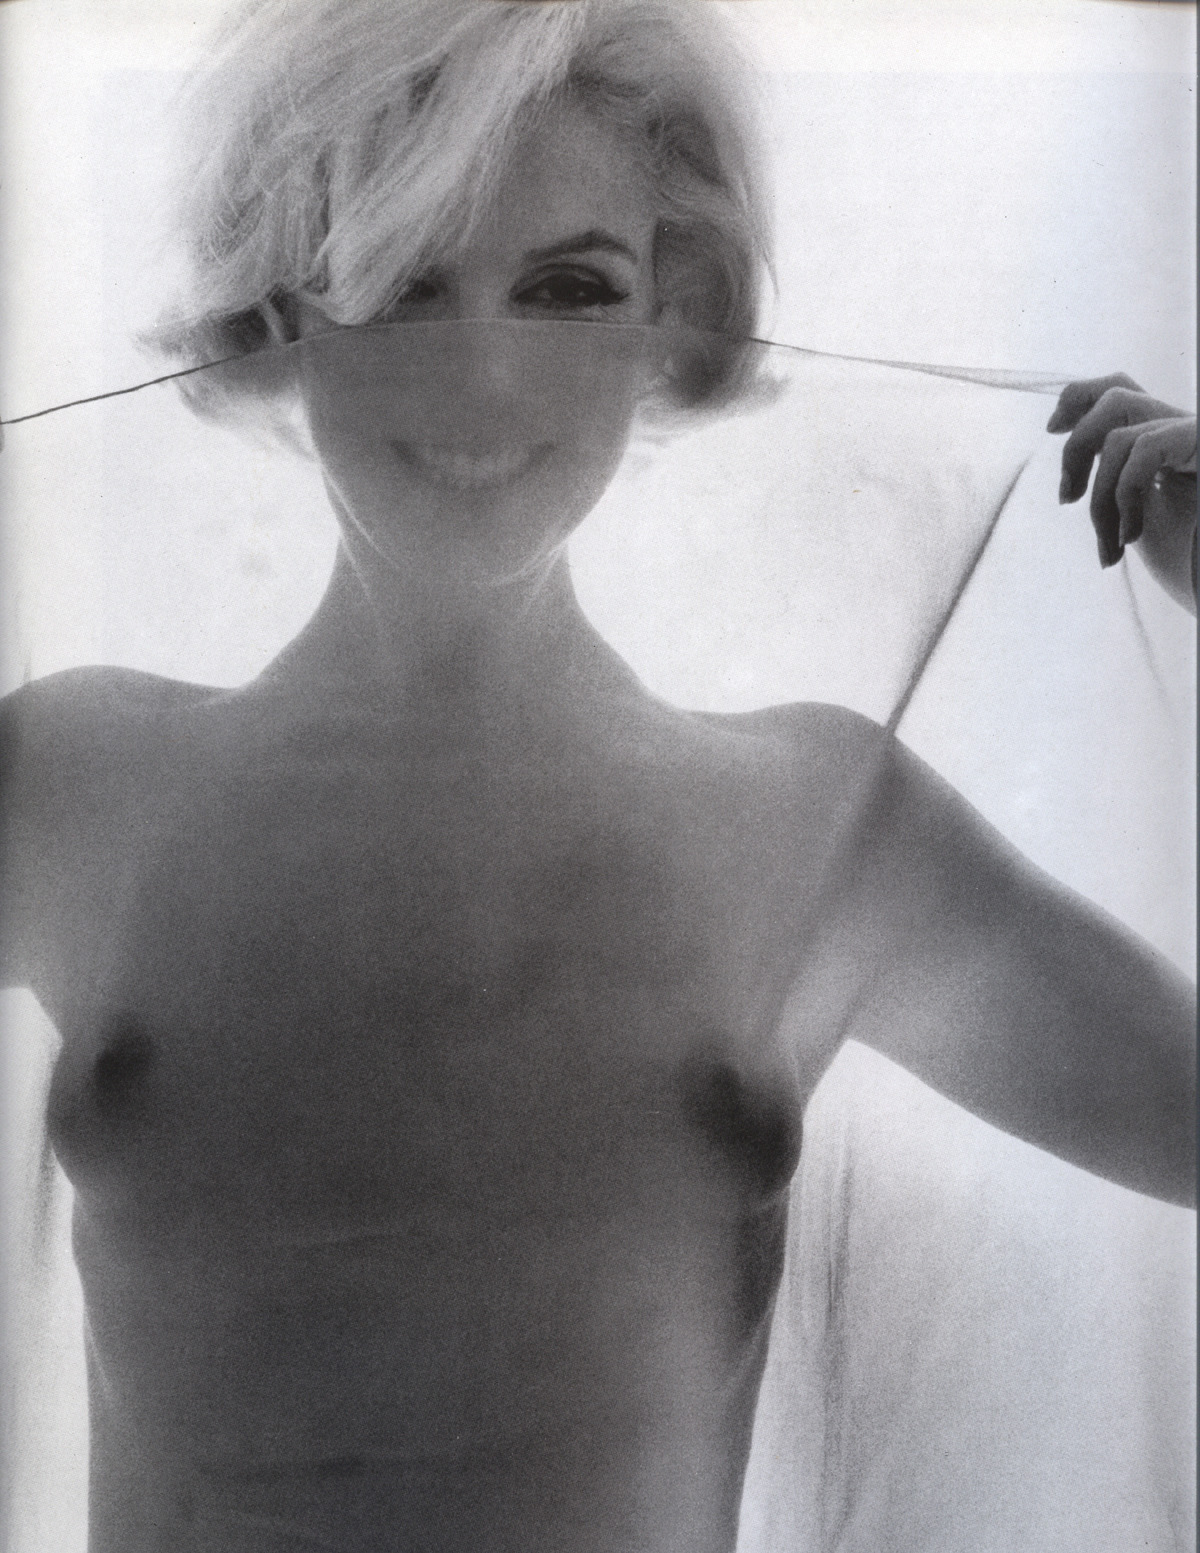 pussylequeer:  Marilyn Monroe photographed by Bert Stern in 1962